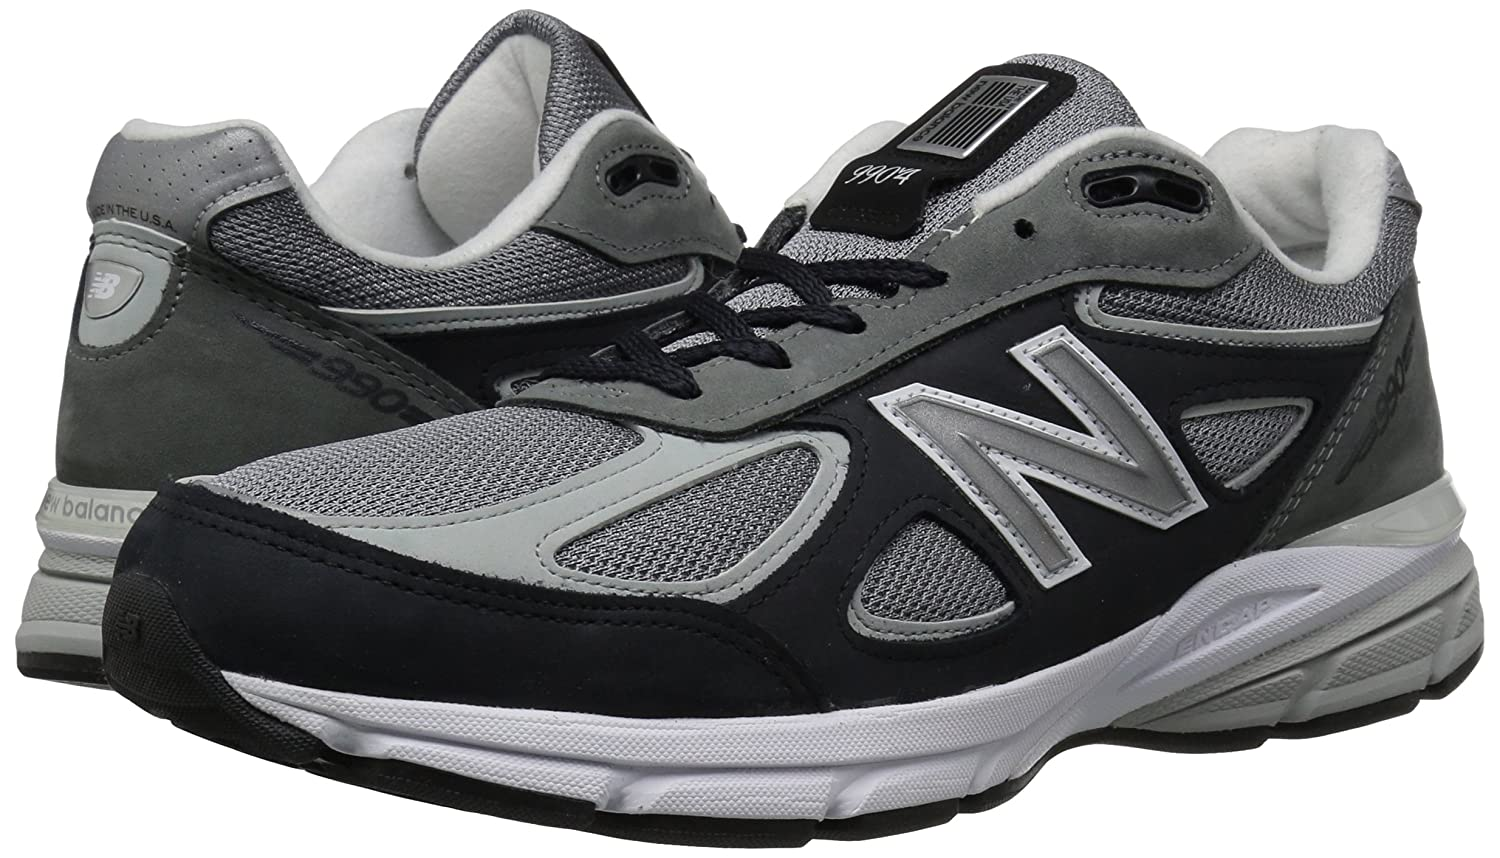 New-Balance-990-990v4-Classicc-Retro-Fashion-Sneaker-Made-in-USA thumbnail 61